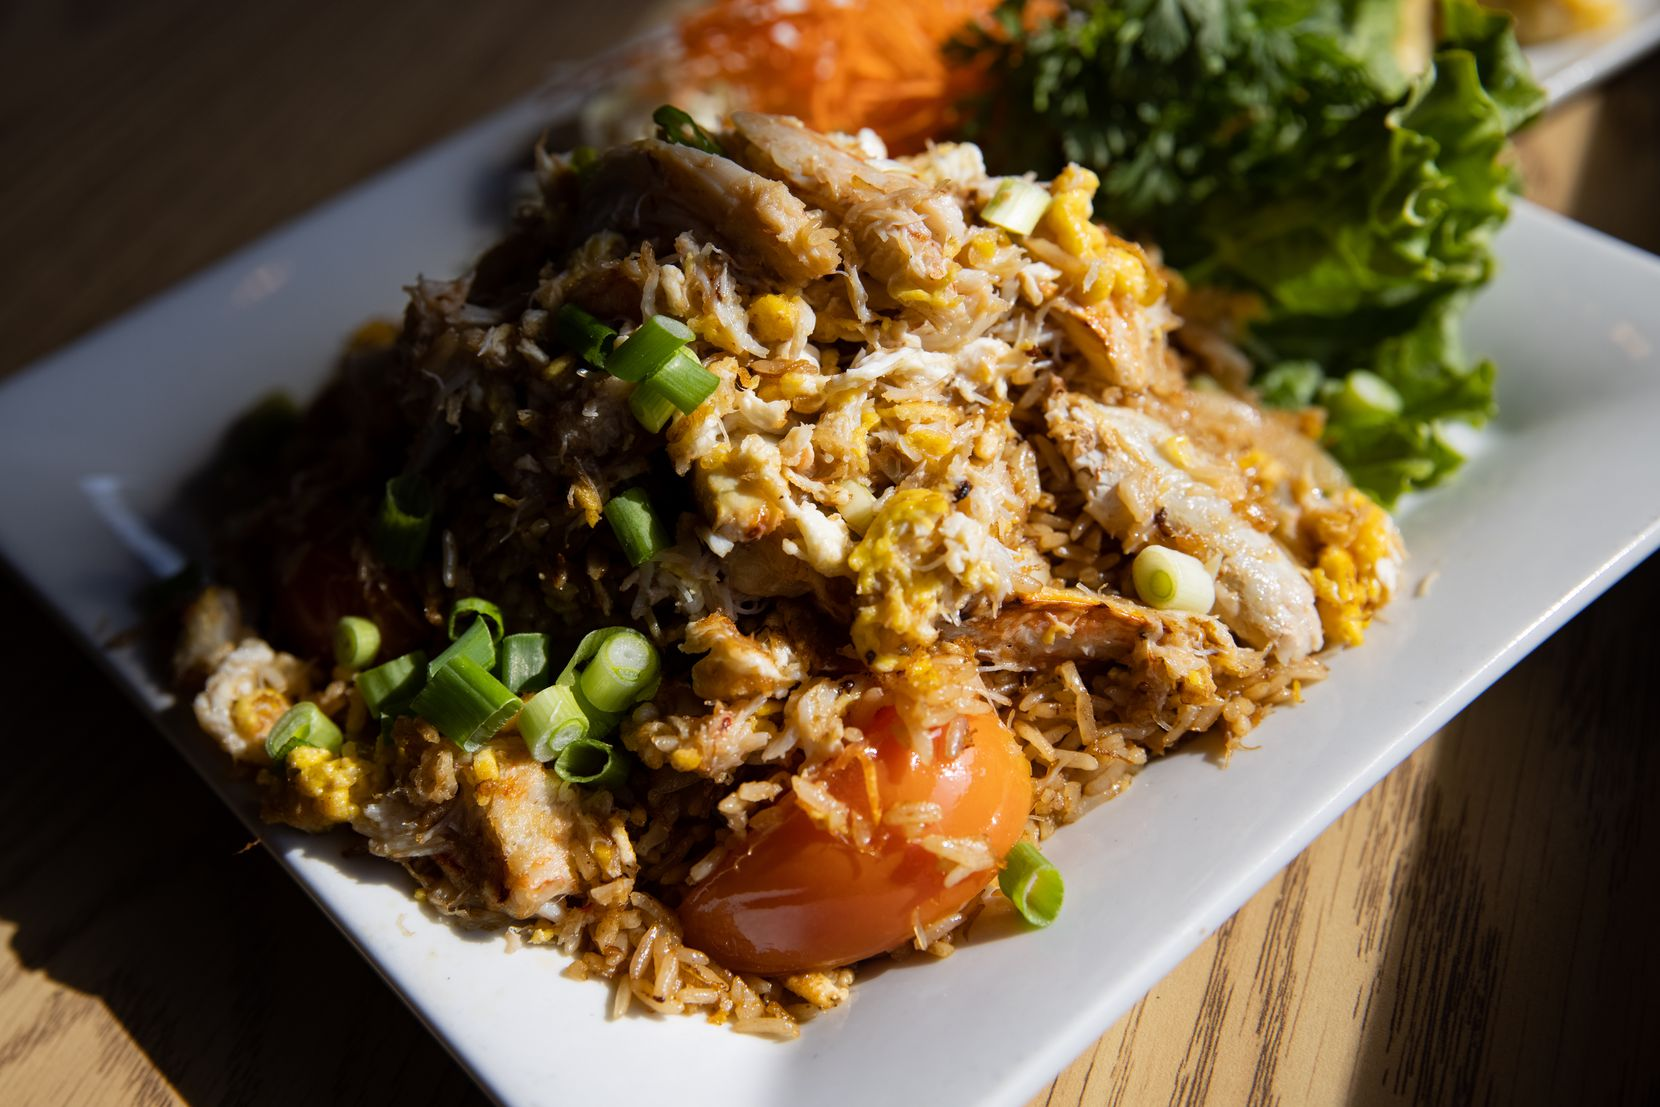 The crab fried rice place from Bangkok at Greenville